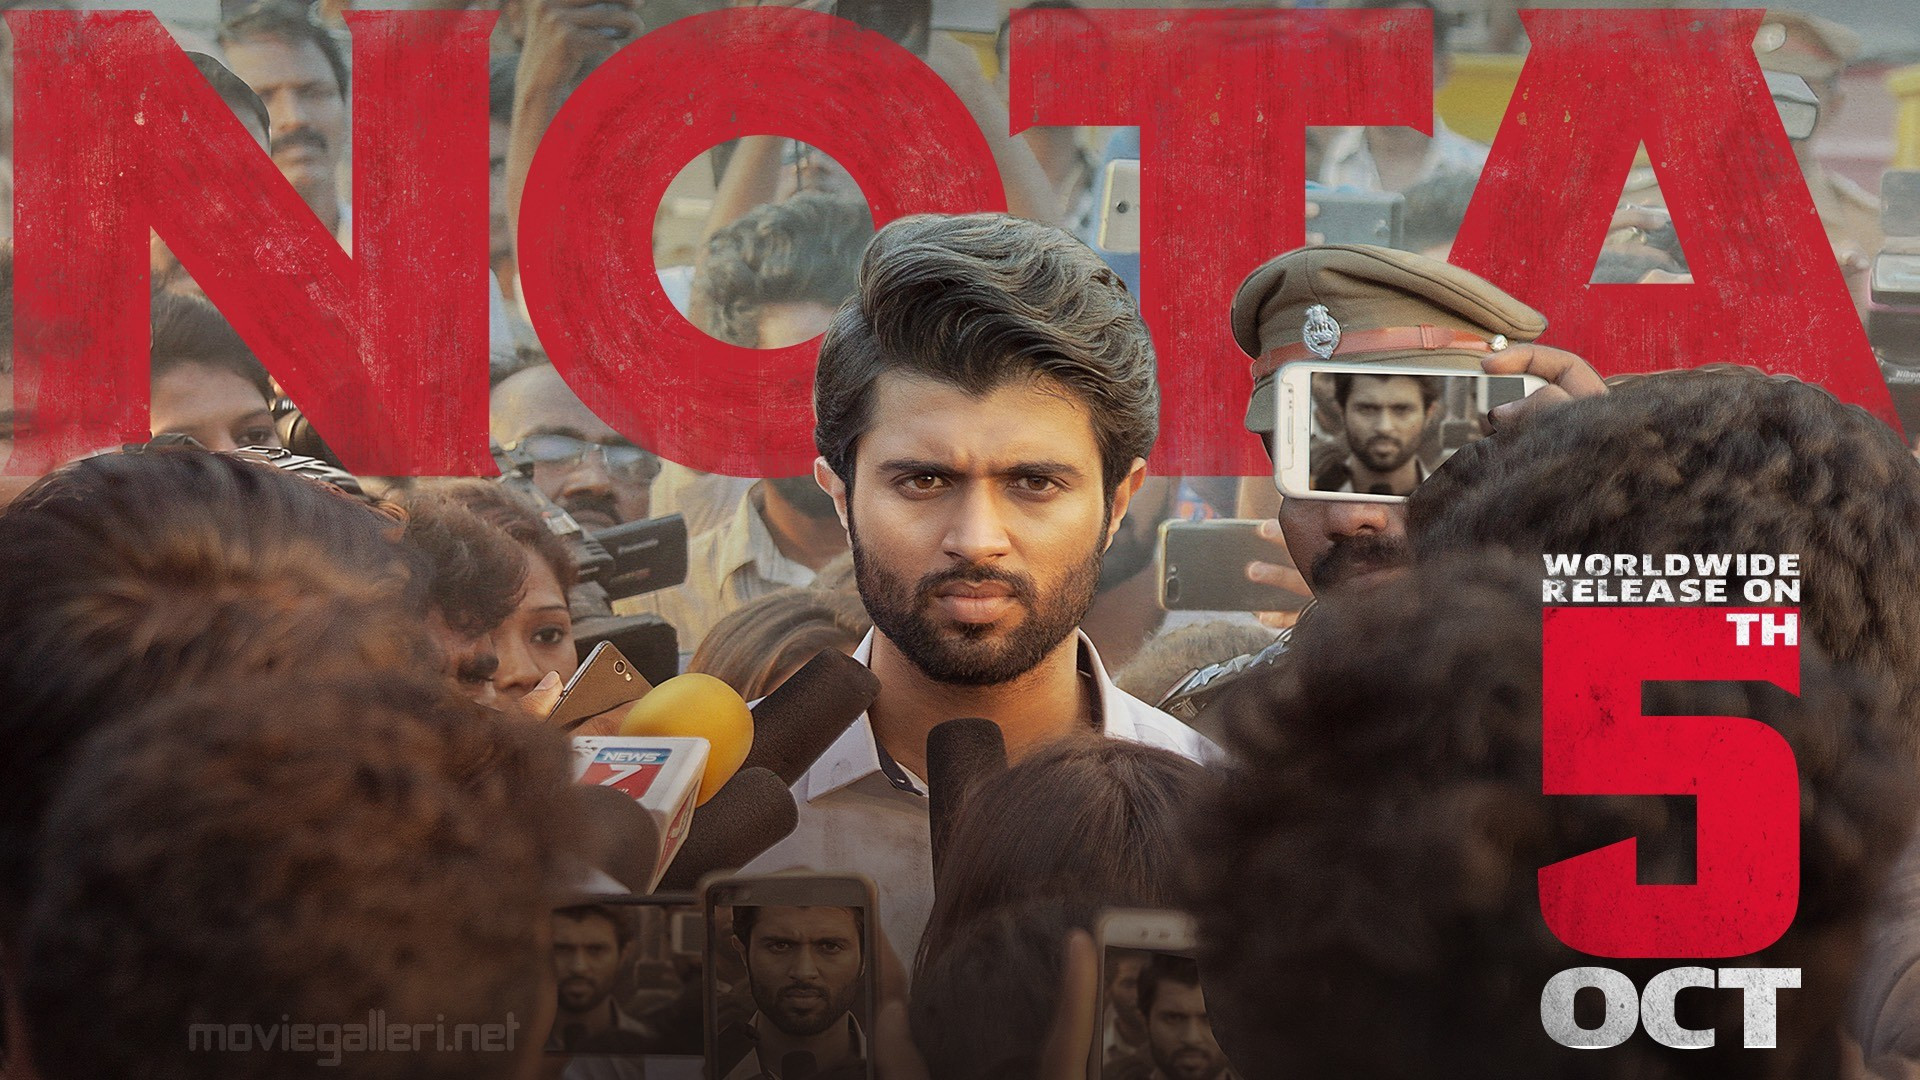 Vijay Devarakonda 'NOTA' Movie Release Date on Oct 5th